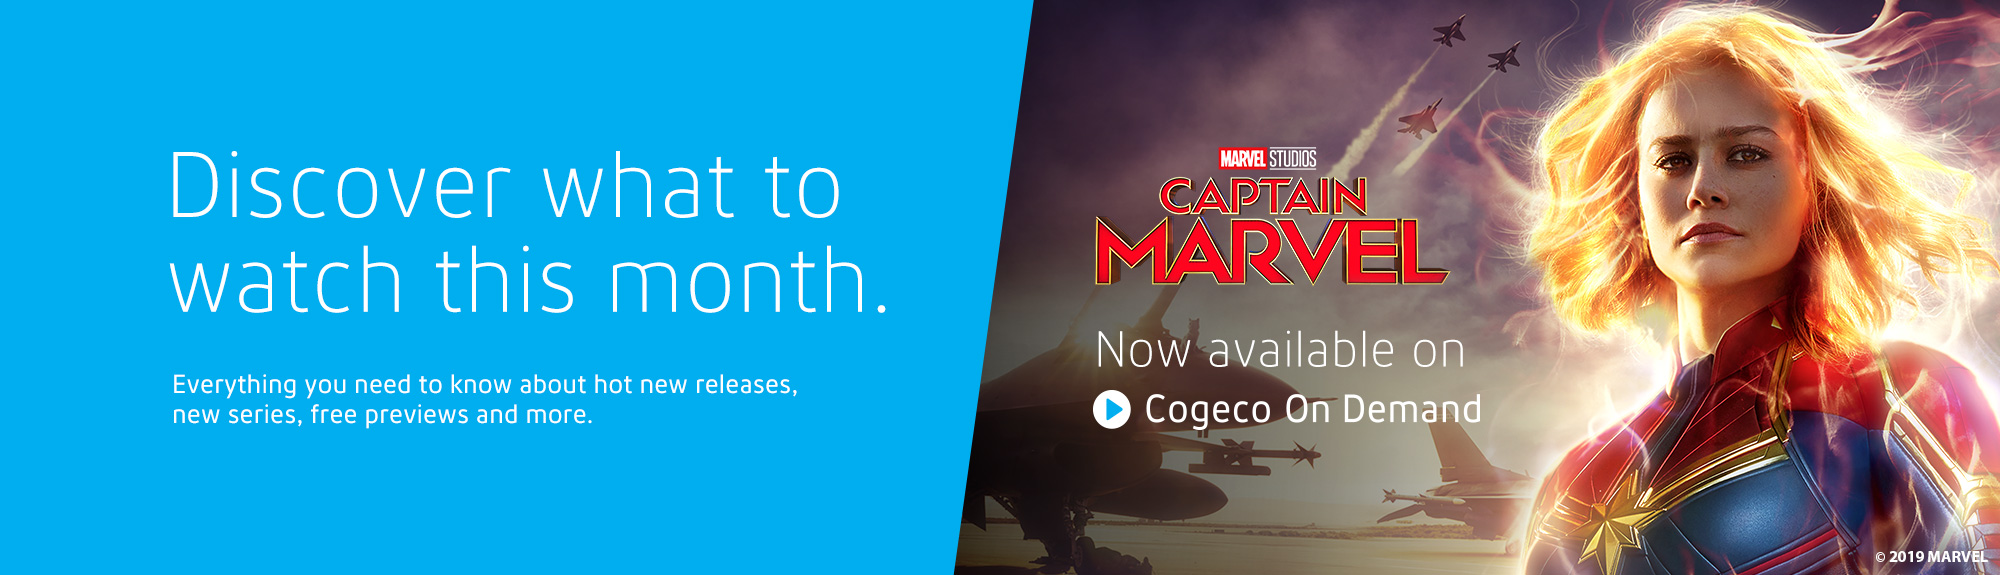 Discover what to watch this month. Everything you need to know about hot new releases, new series, free previews and more. Now available on Cogeco On Demand.